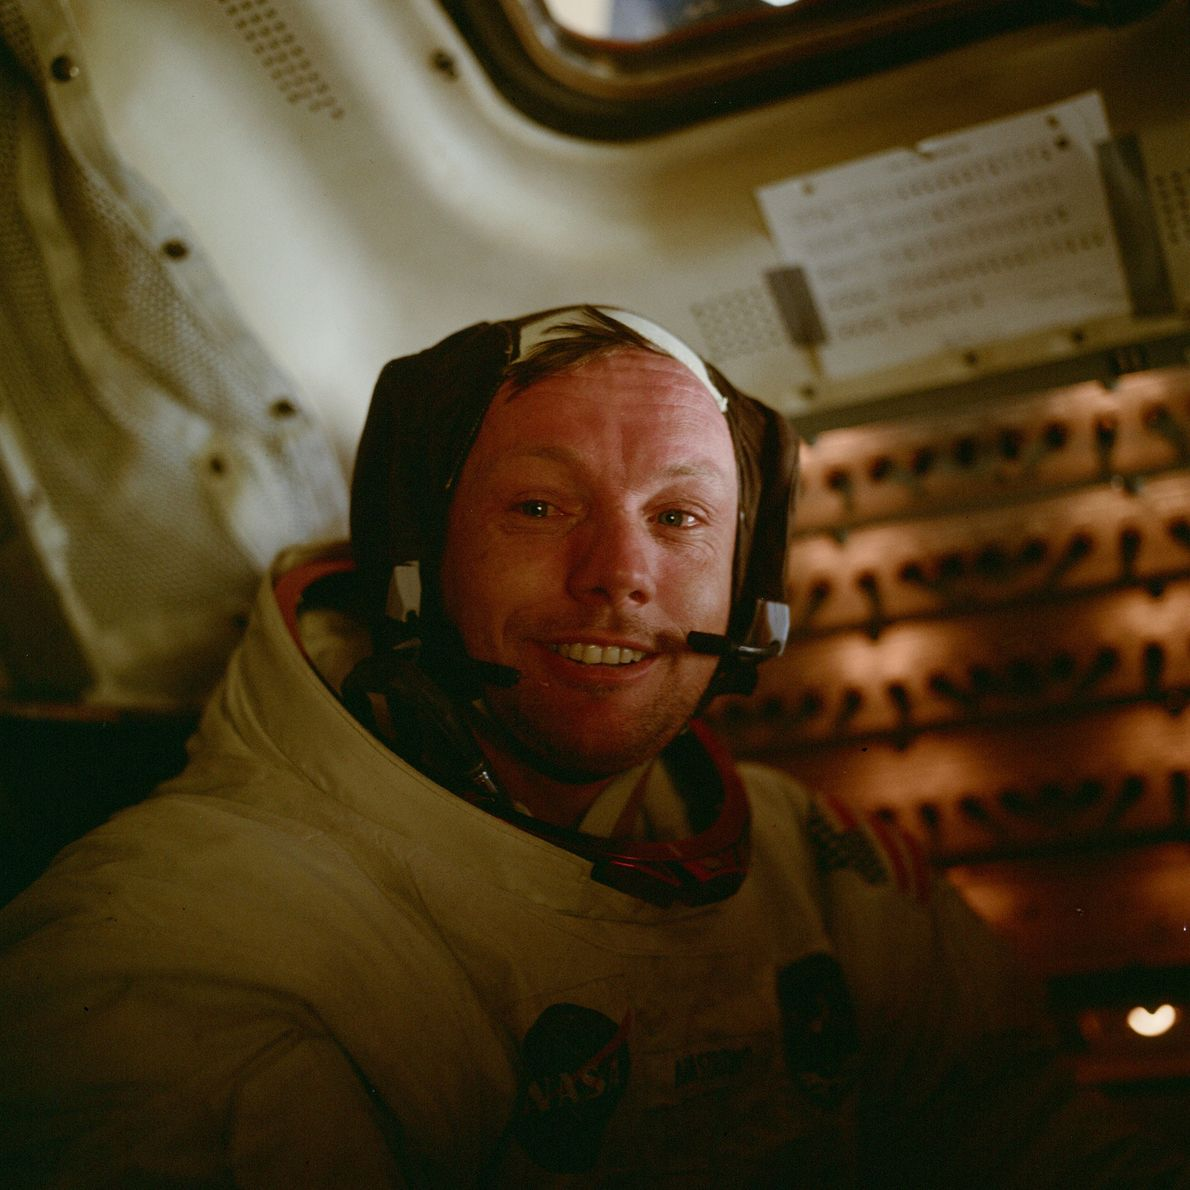 Apollo 11 astronaut Neil Armstrong in the lunar module shortly after taking the first steps on …